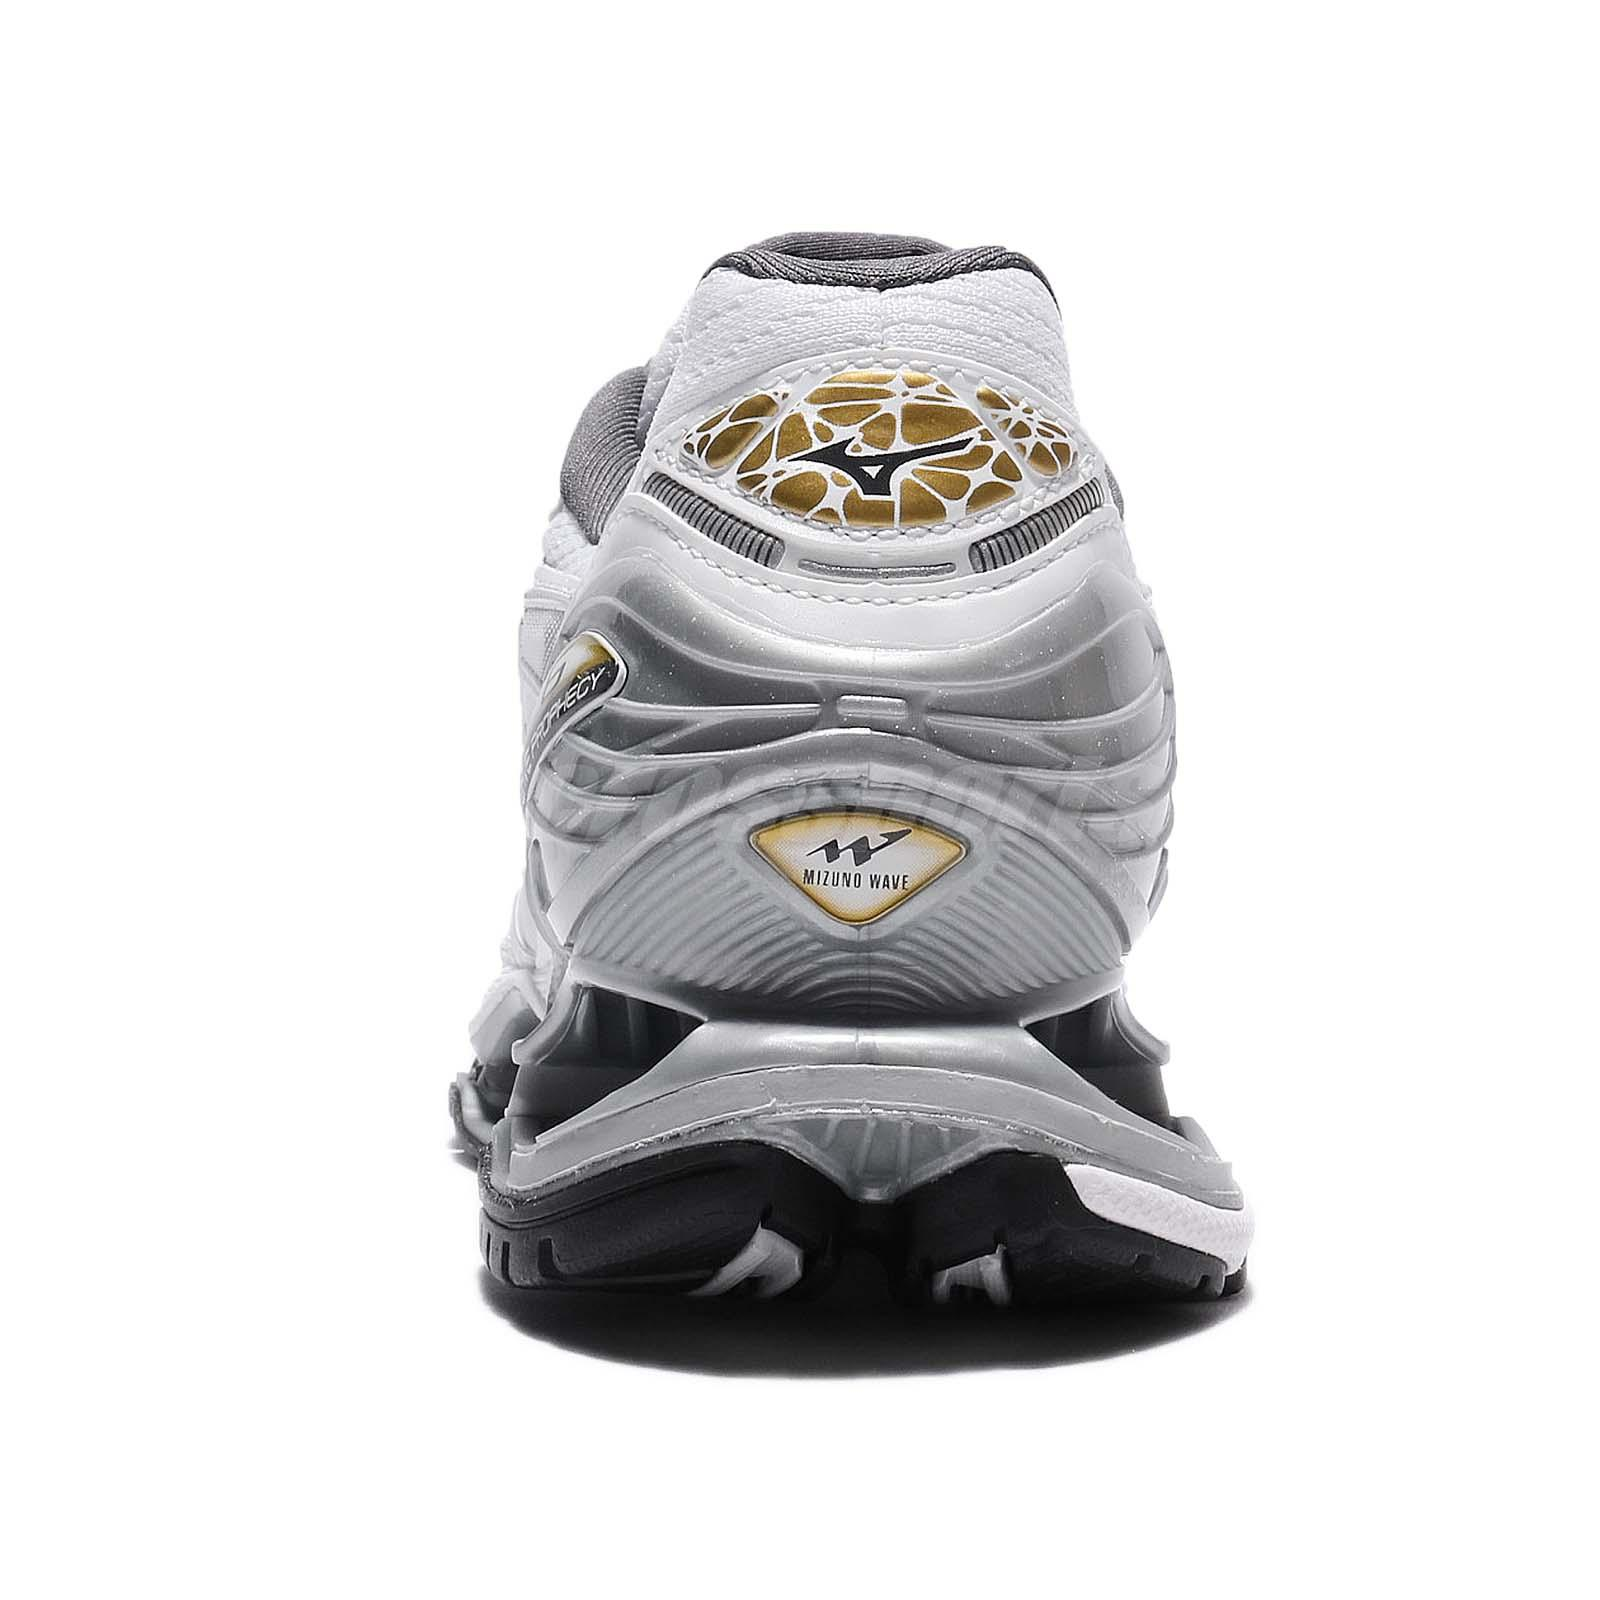 size 40 6b513 f9a69 ... switzerland condition brand new with box mizuno wave prophecy 6 mens white  silver gold classic 3d ...